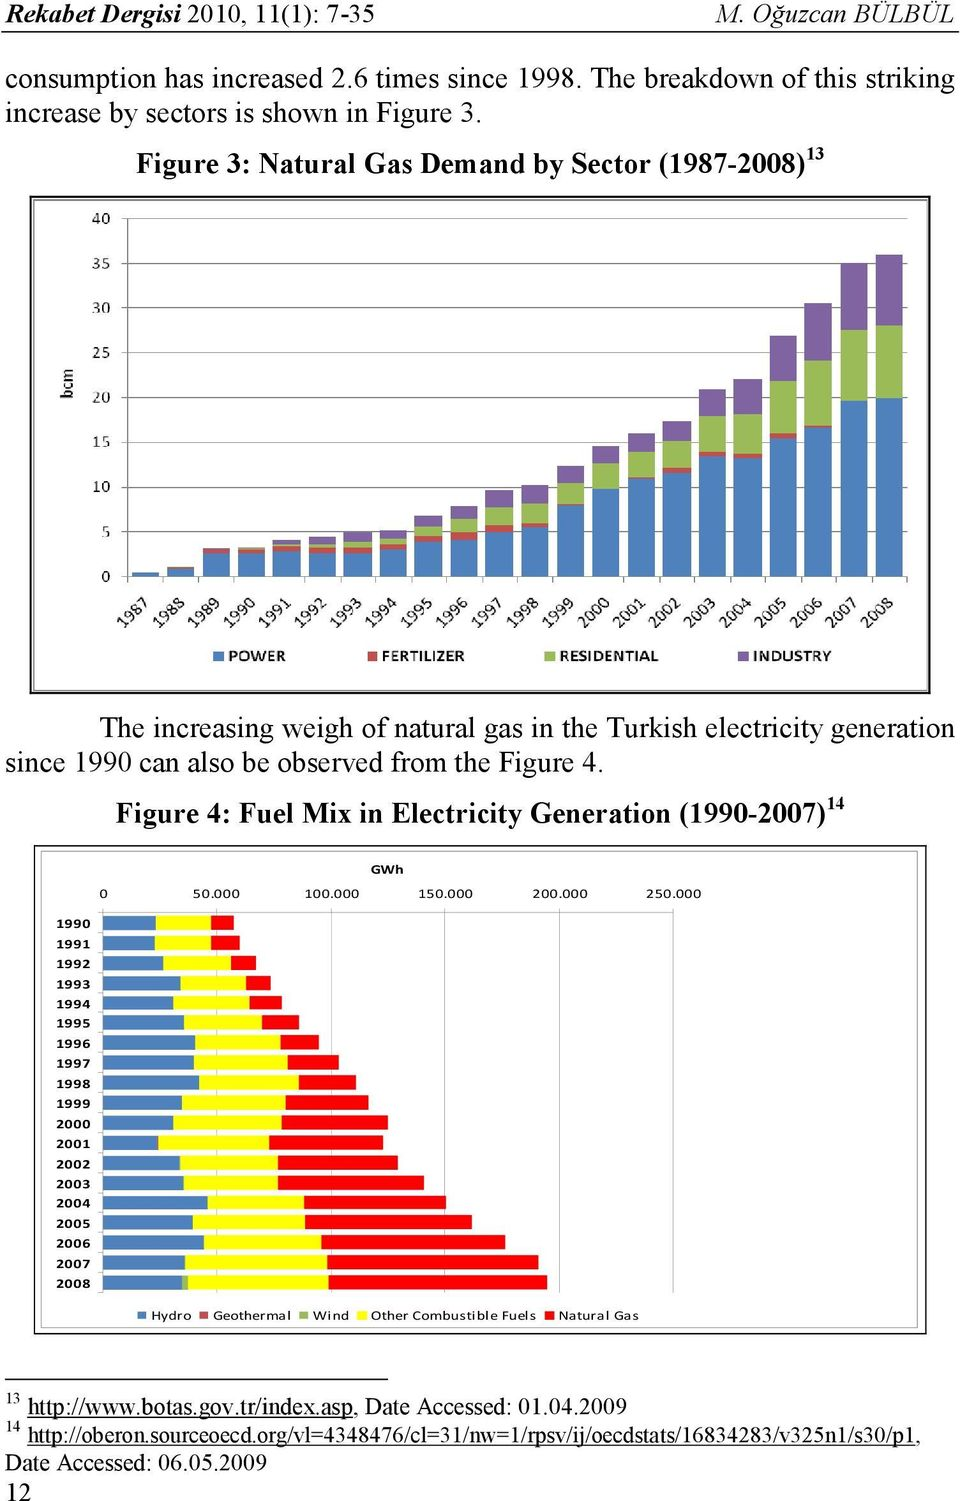 Figure 4: Fuel Mix in Electricity Generation (1990-2007) 14 1990 1991 1992 1993 1994 1995 1996 1997 1998 1999 2000 2001 2002 2003 2004 2005 2006 2007 2008 GWh 0 50.000 100.000 150.000 200.000 250.